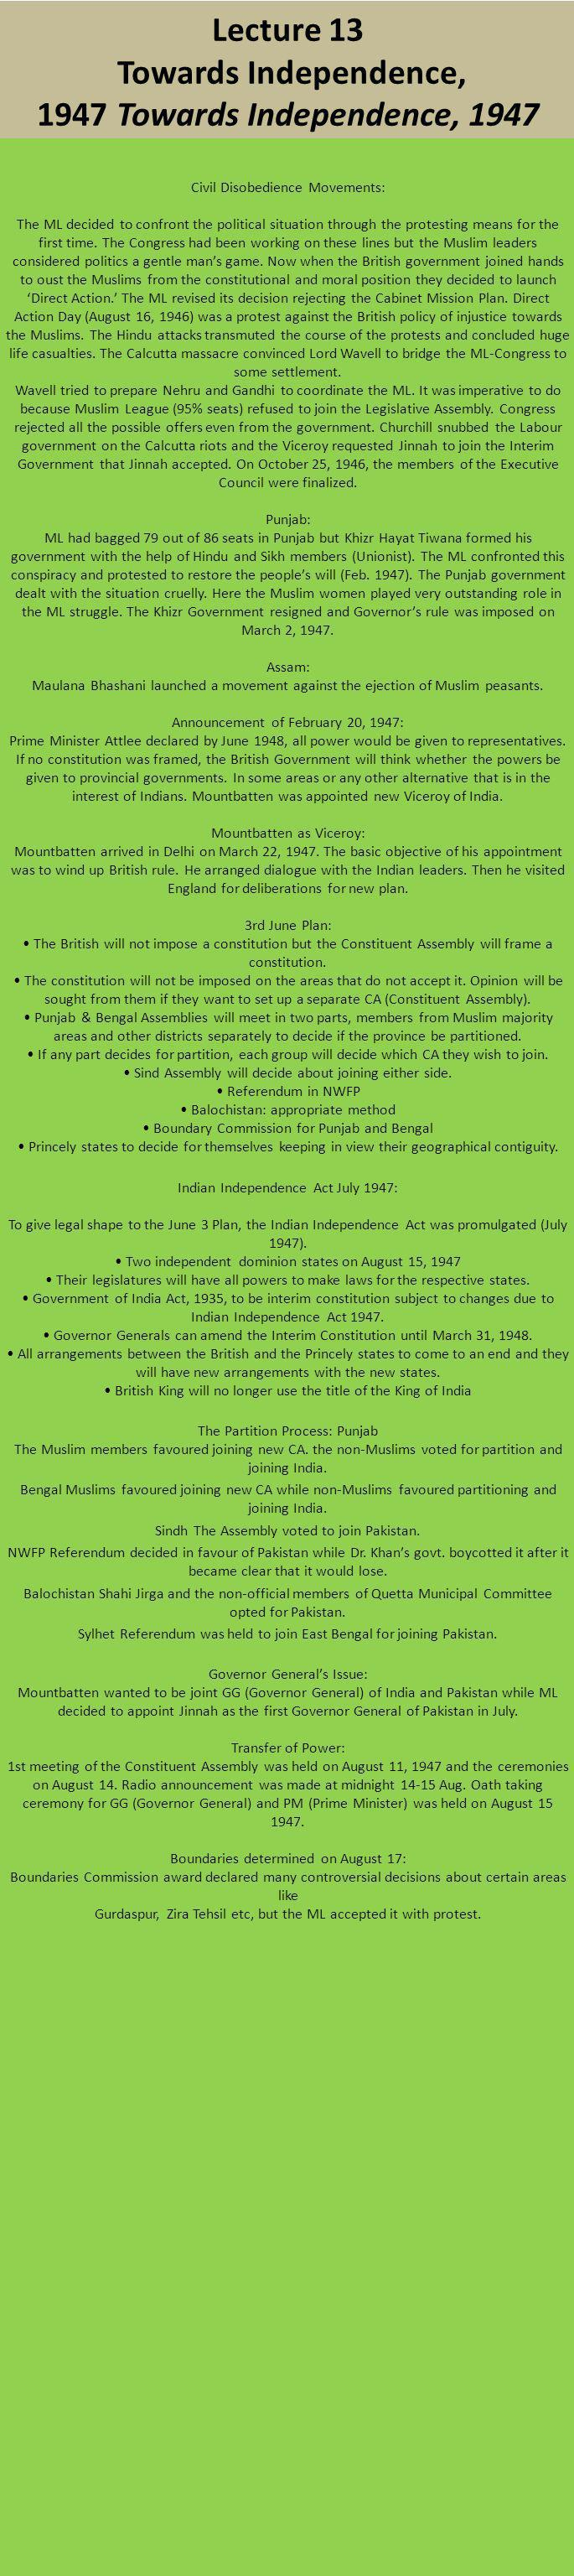 Lecture 10 - The Congress Ministries-- Policies towards Muslims The Congress Ministries-- Policies towards Muslims